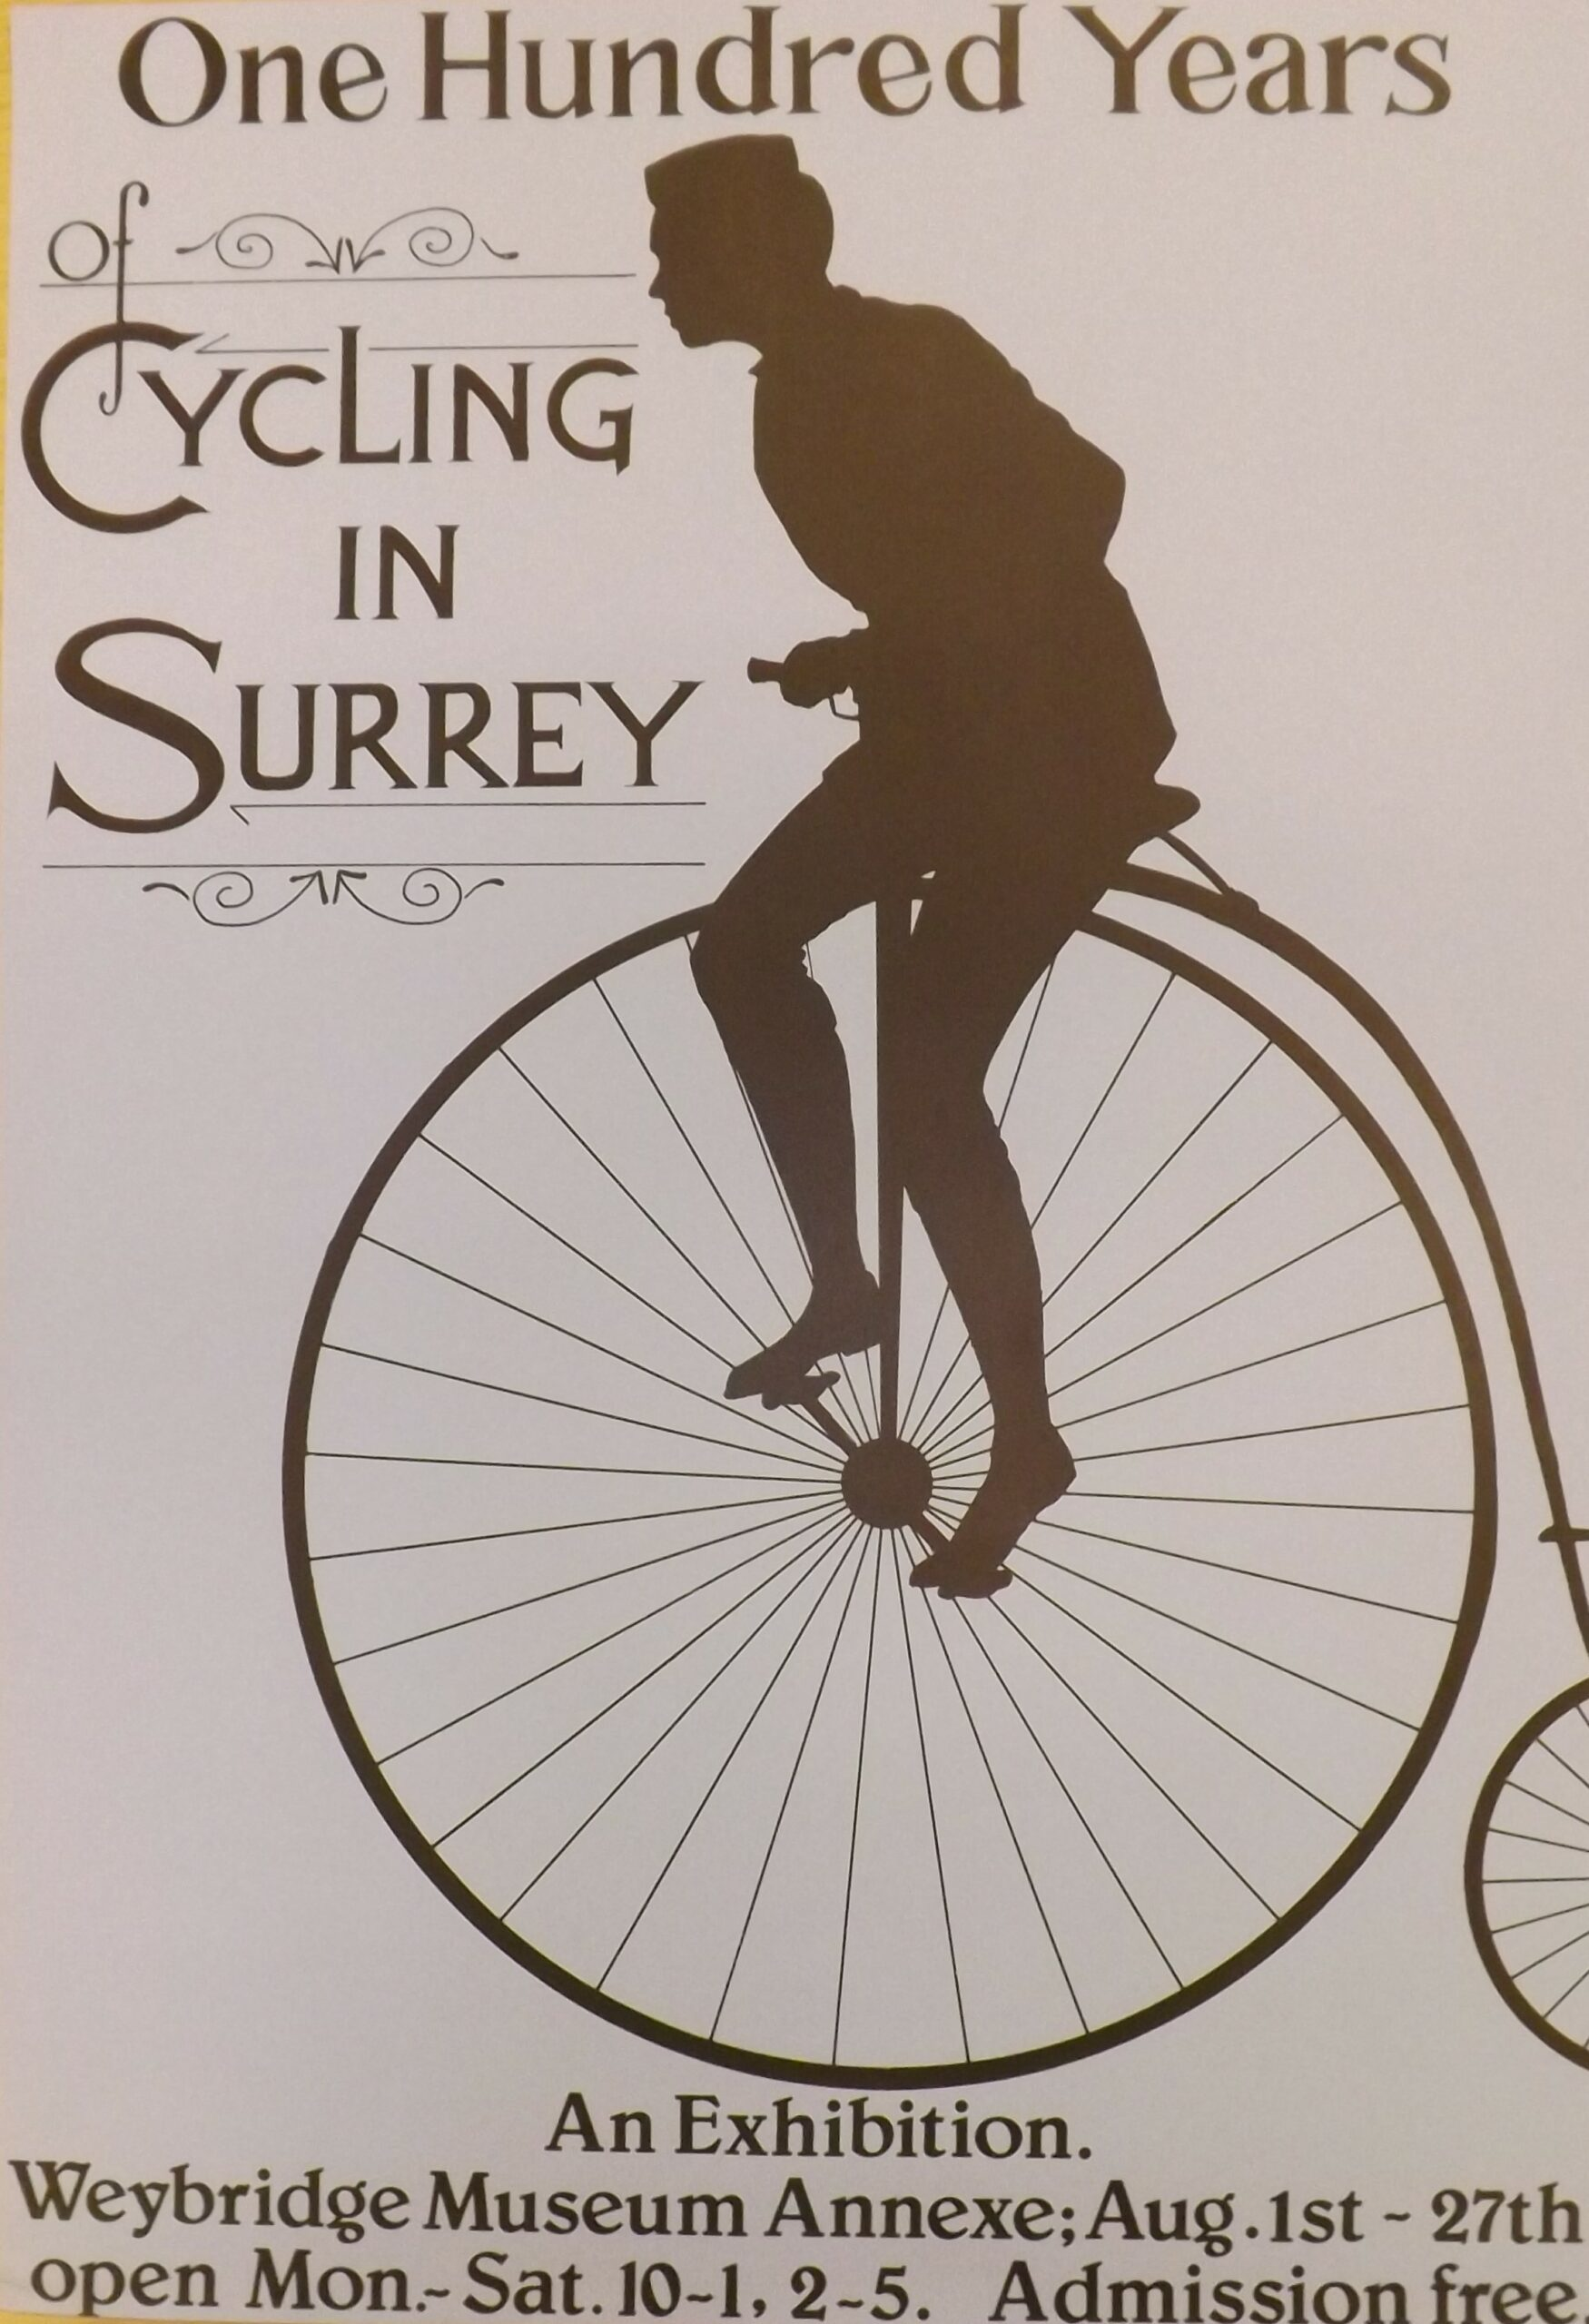 Museum poster from Weybridge Museum (now Elmbridge Museum) advertising their '100 Years of Cycling in Surrey' exhibition c.1980s, in their former gallery space above Weybridge Library, Church Street.